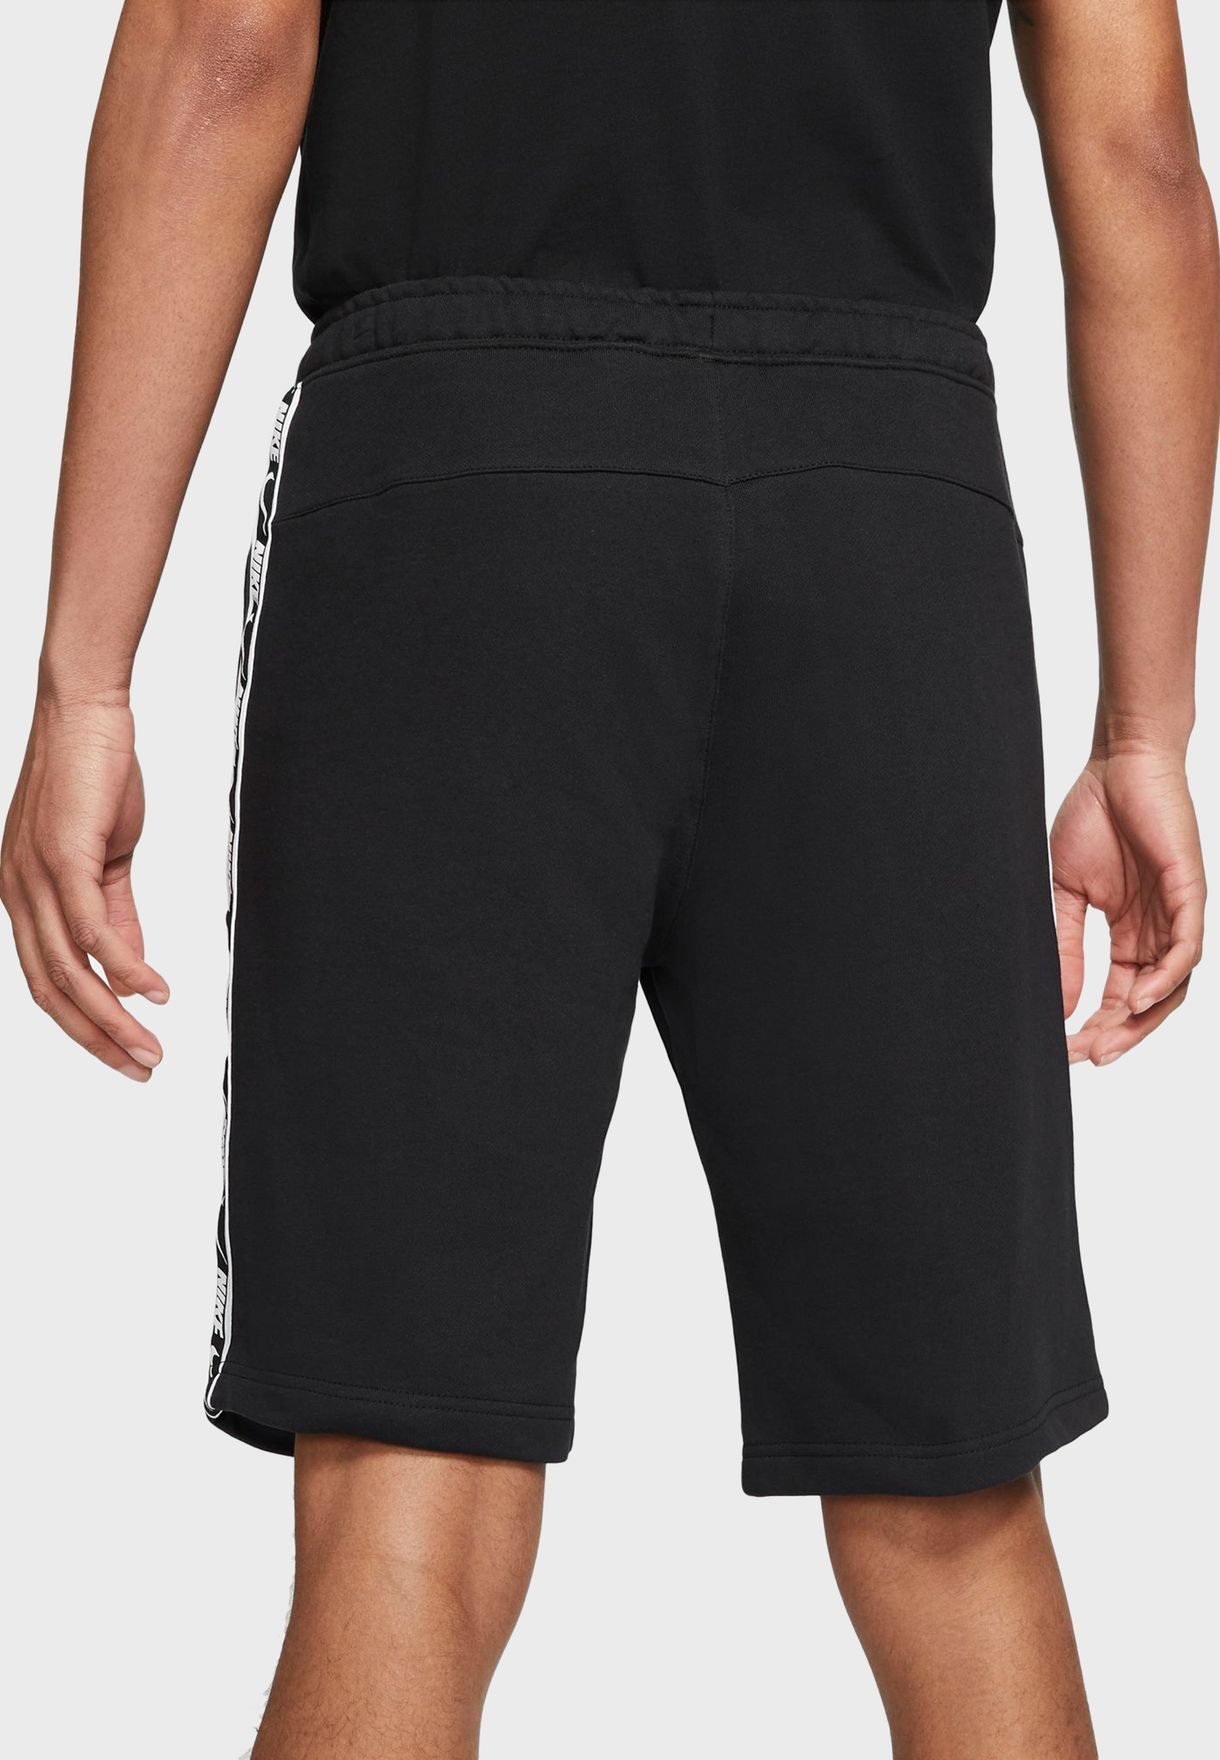 NSW Repeat Shorts